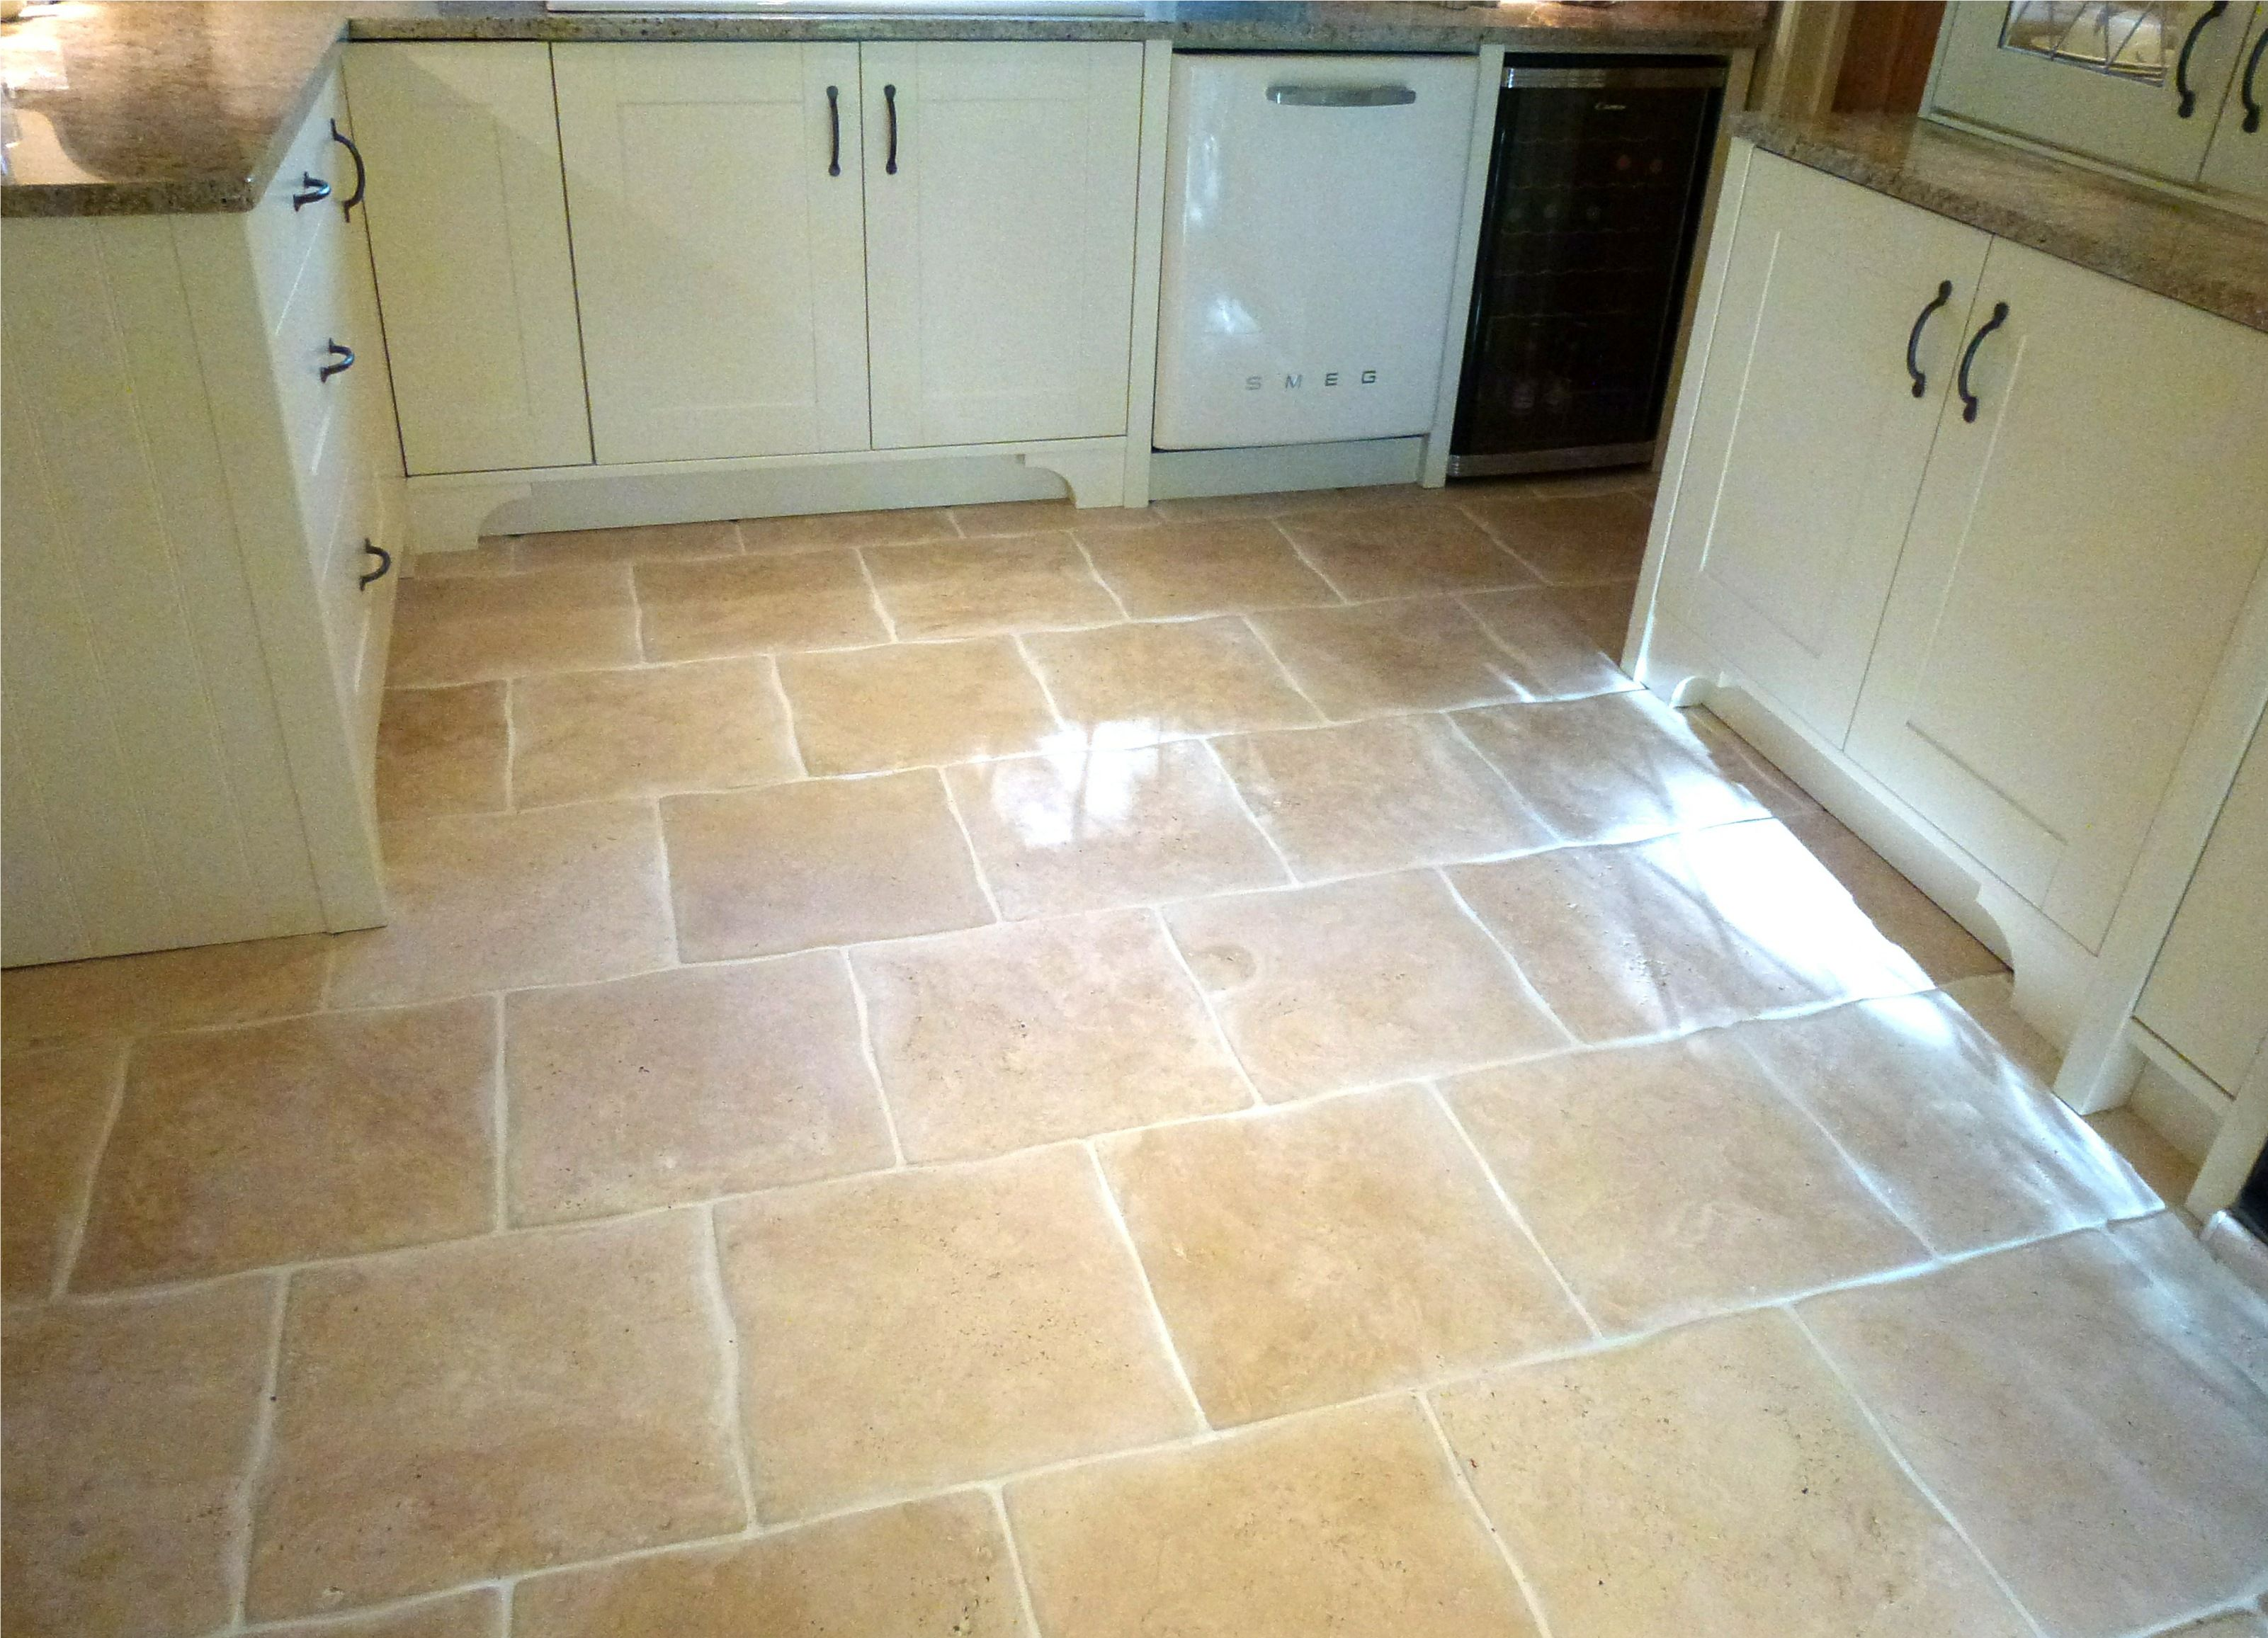 Kitchen Flooring Tiles Portable Island With Seating The Color Of Tile Wavy Edge Travertine Floor